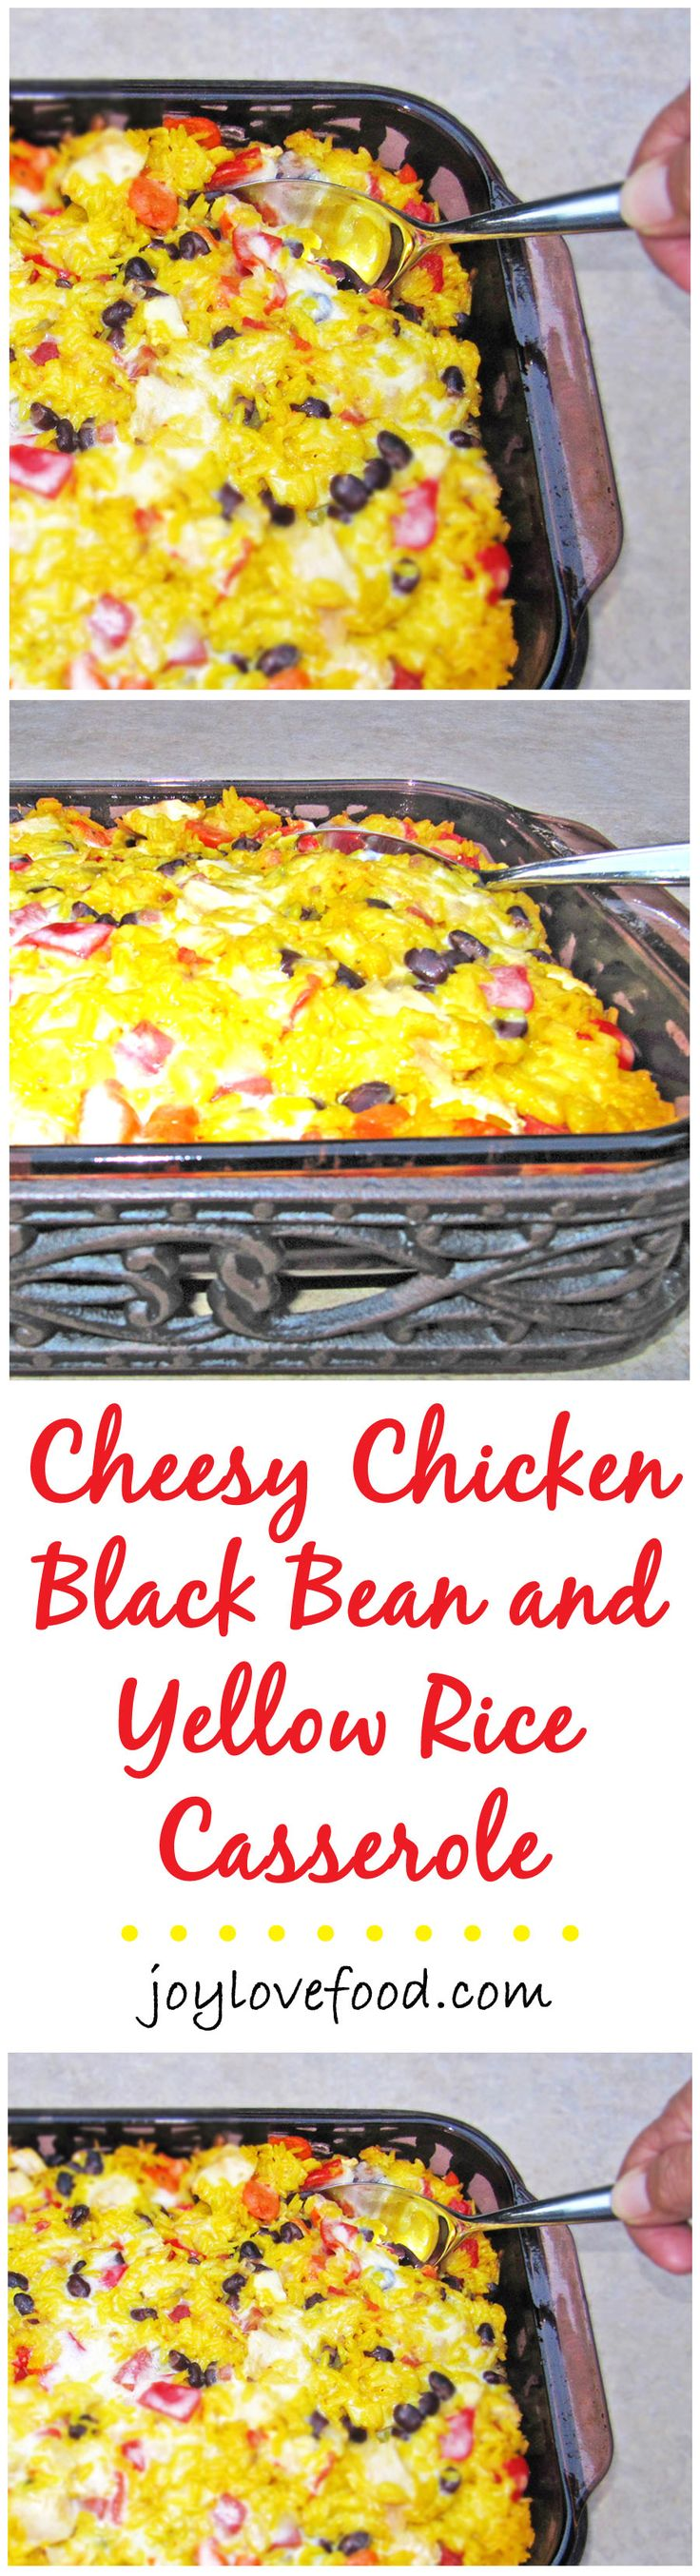 Cheesy Chicken, Yellow Rice and Black Bean Casserole -- colorful veggies, black beans, chicken and yellow rice are combined with melting Monterey Jack cheese in this delicious casserole that is sure to please both kids and adults.